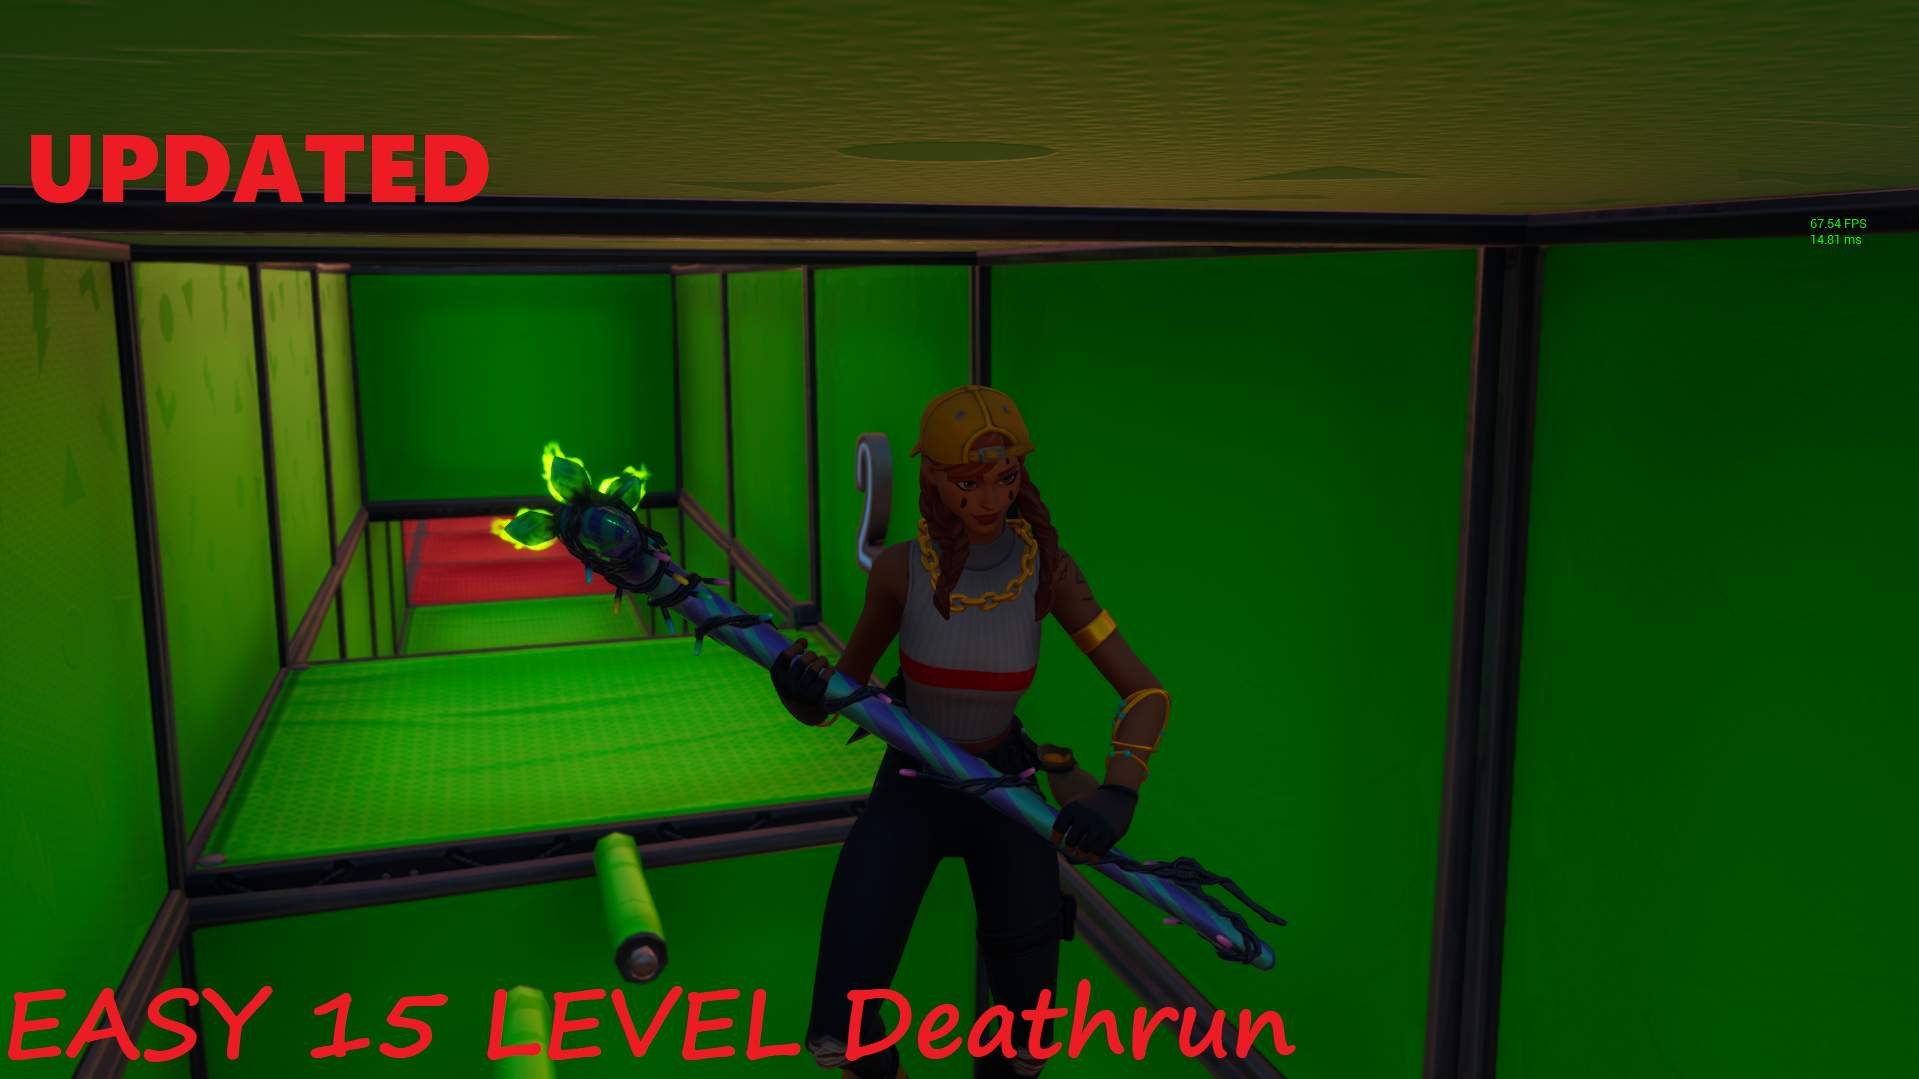 EASY 15 LEVEL DEATHRUN BY PAN_GO UPDATED